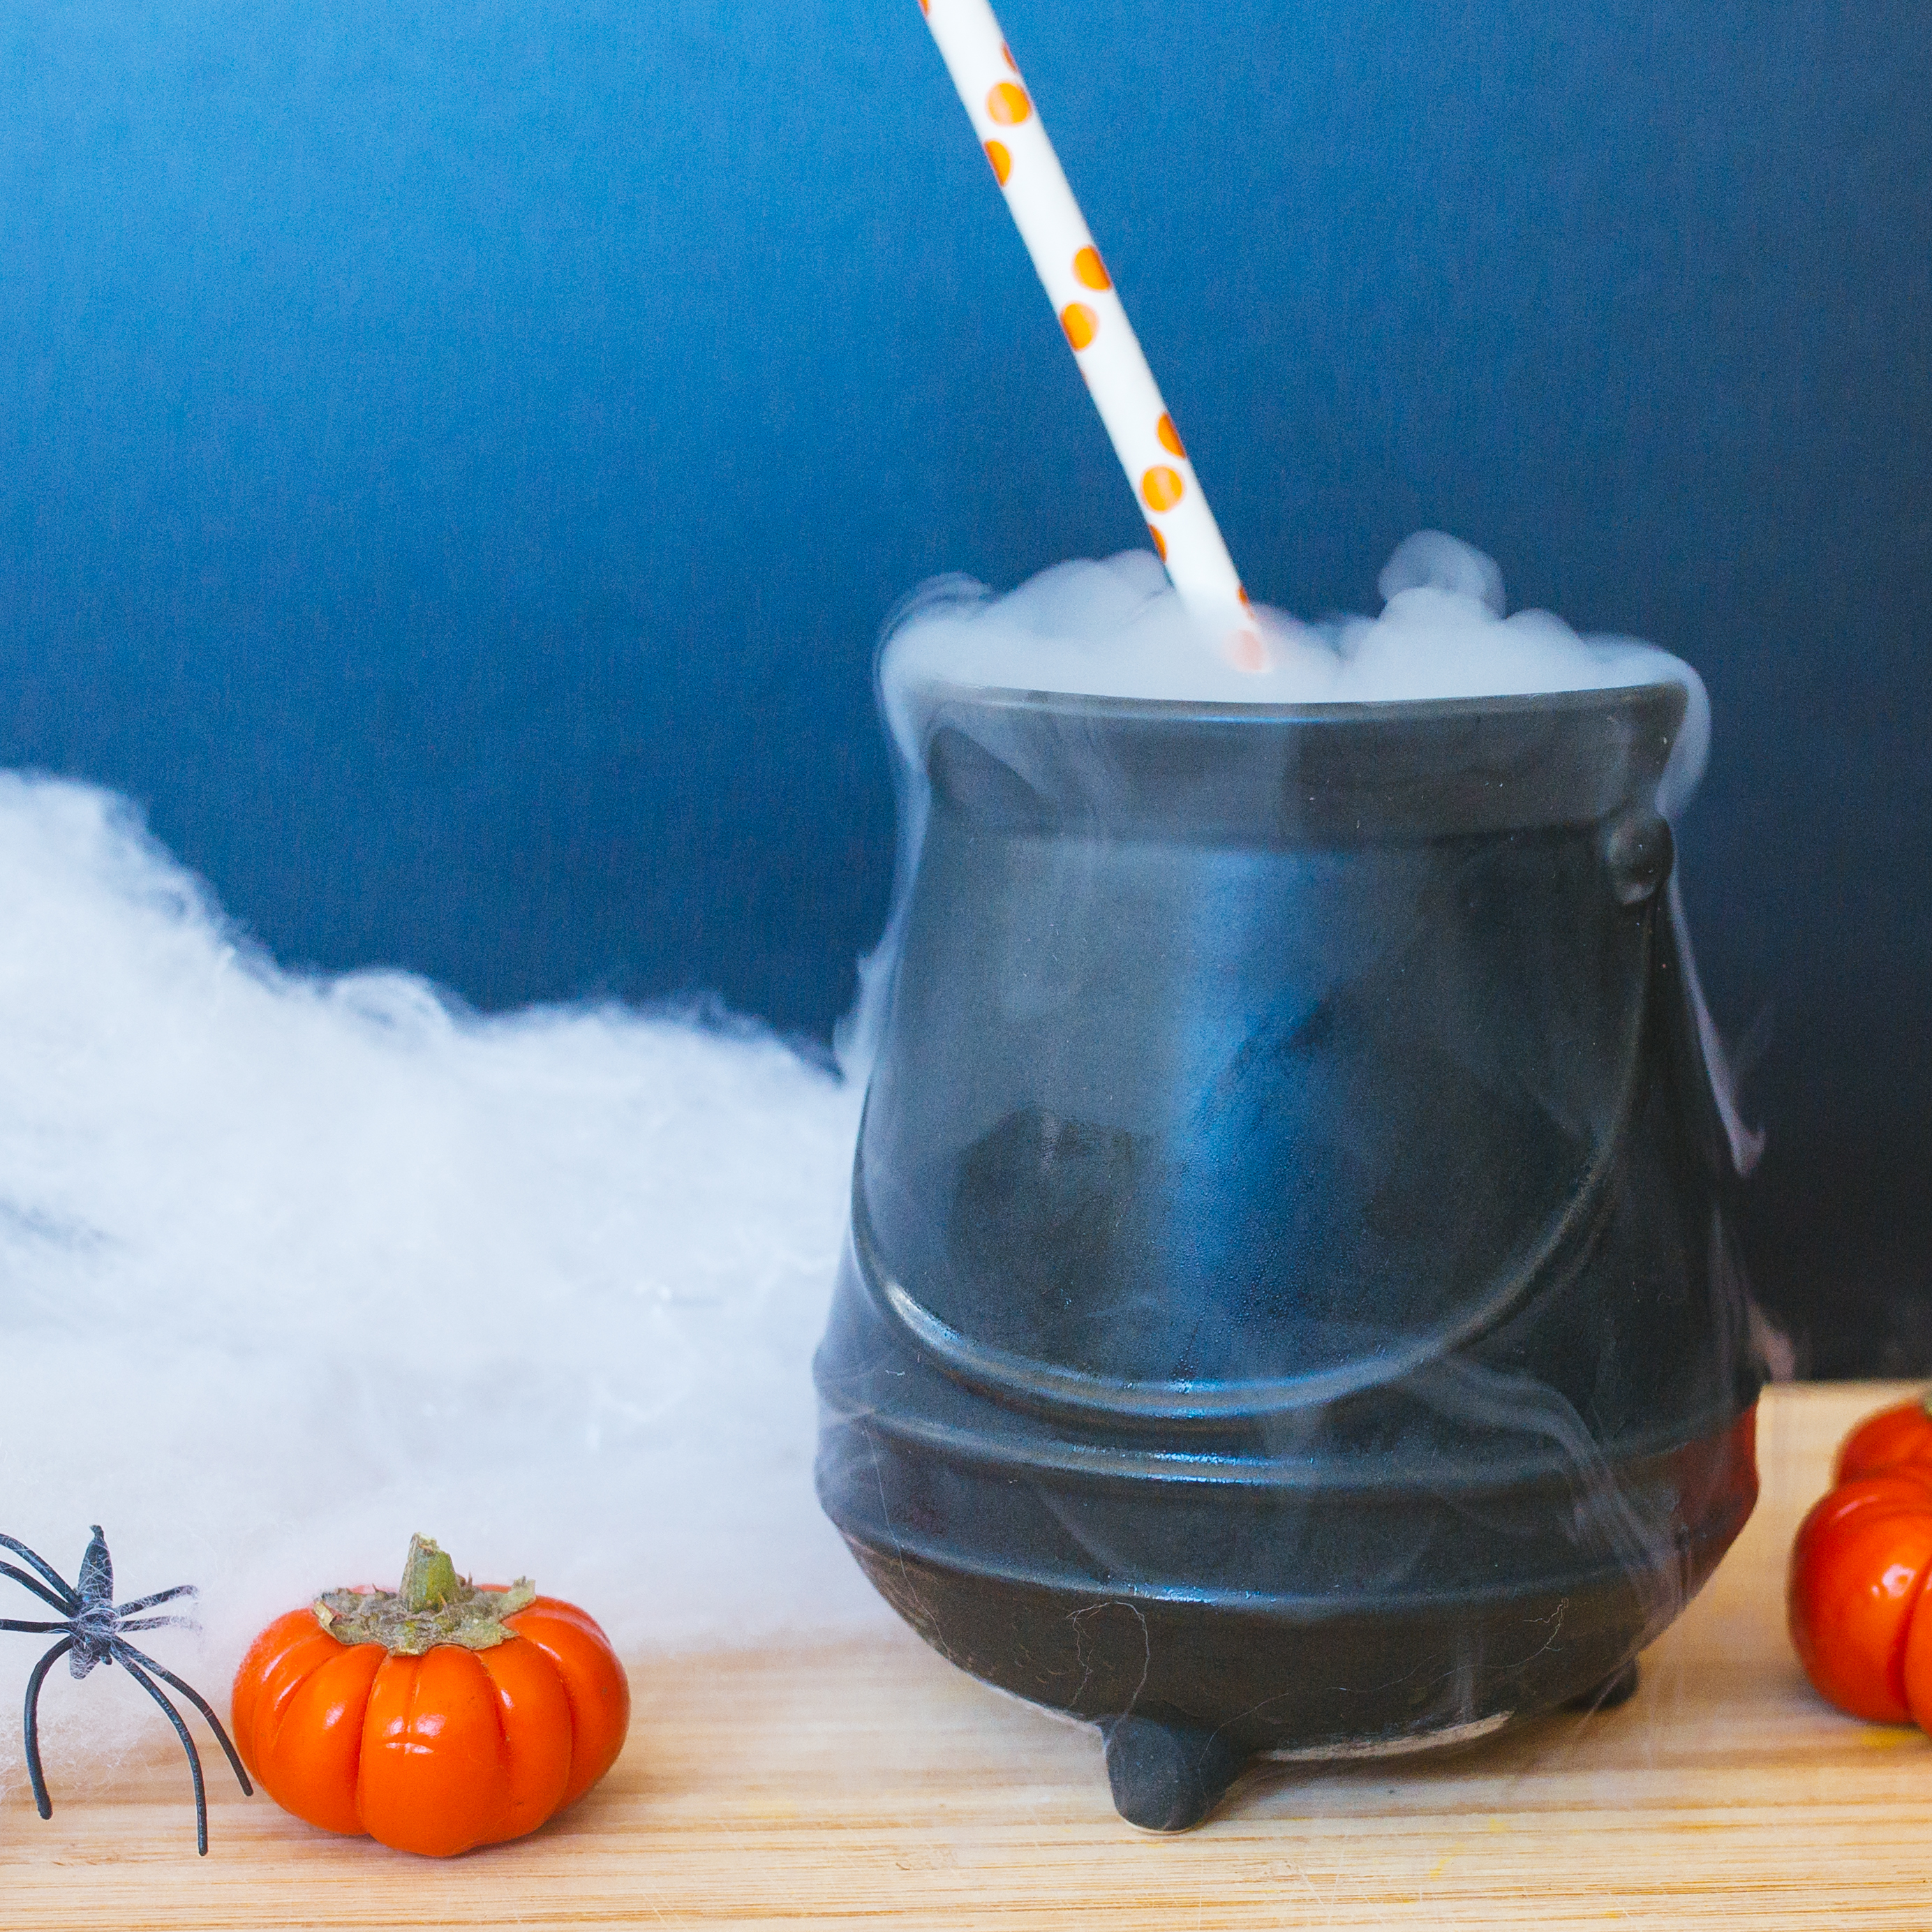 Looking for spook-tacular Halloween drinks? Our Shakeology smoothies are getting in on the haunted holiday fun with ghoulish costumes of their own, like this witches' brew smoothie.